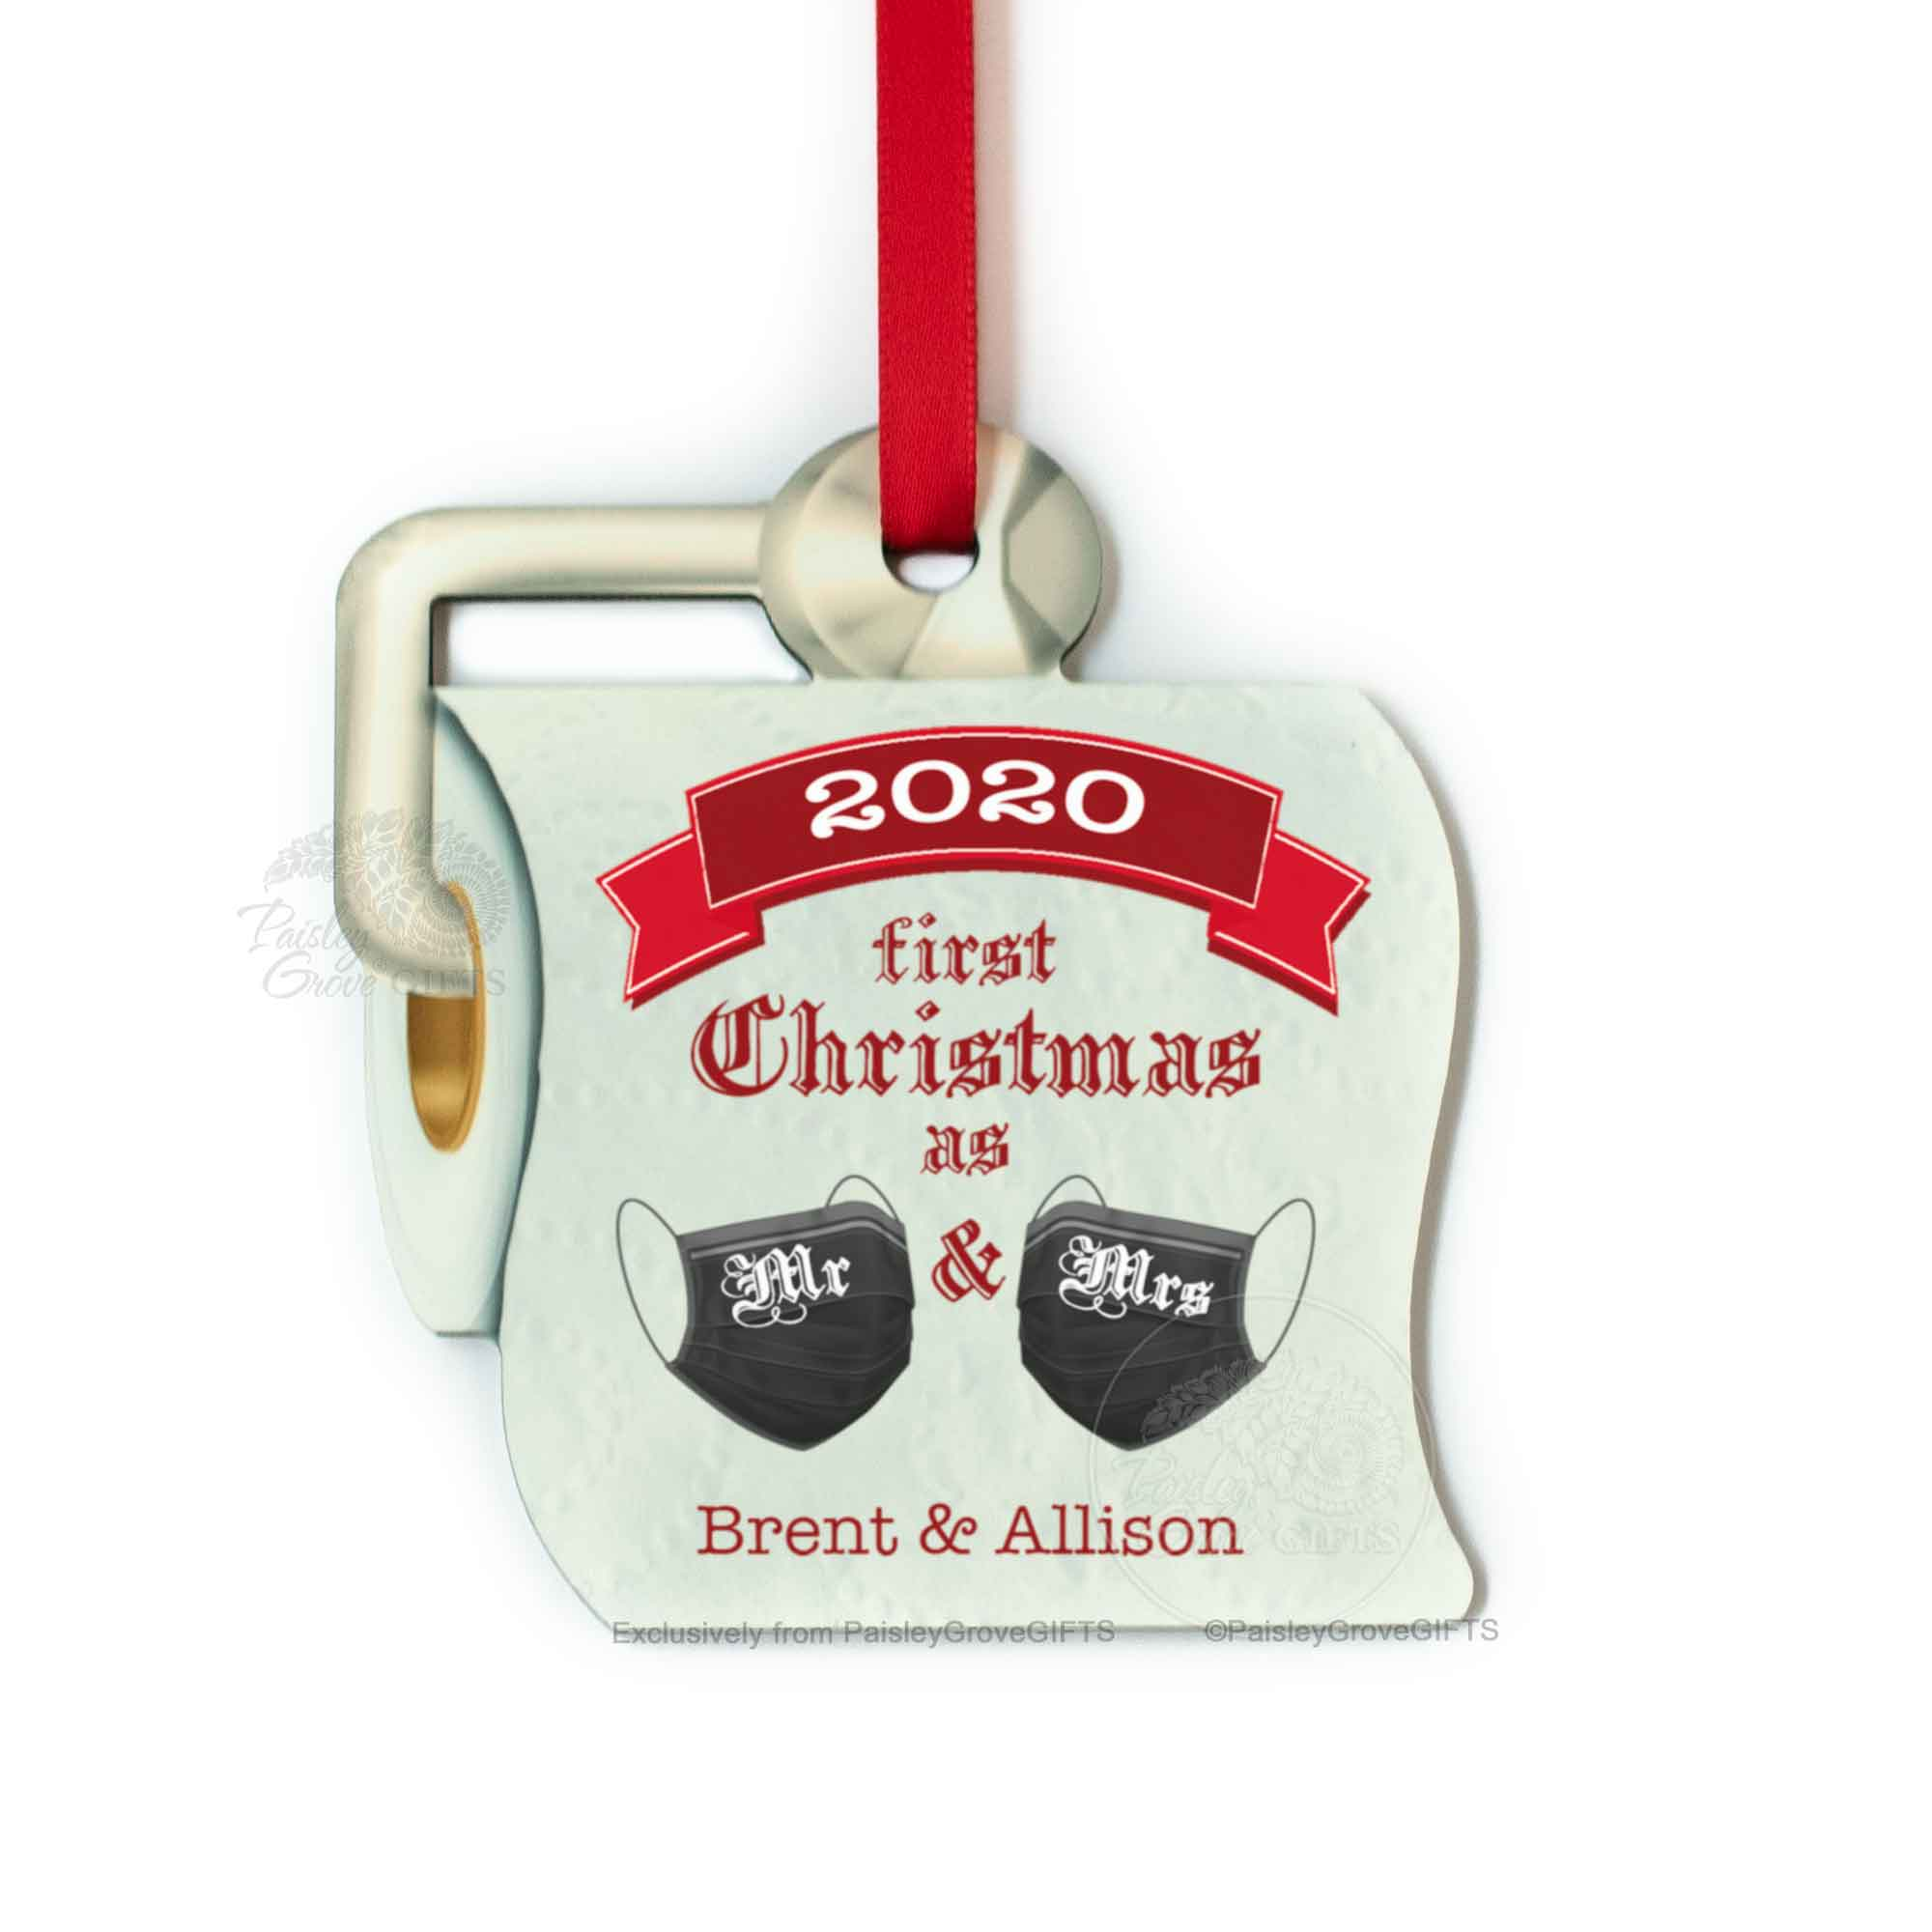 Copyright PaisleyGroveGIFTS S525f2 First Christmas as Mr and Mrs Funny Toilet Paper Christmas Ornament